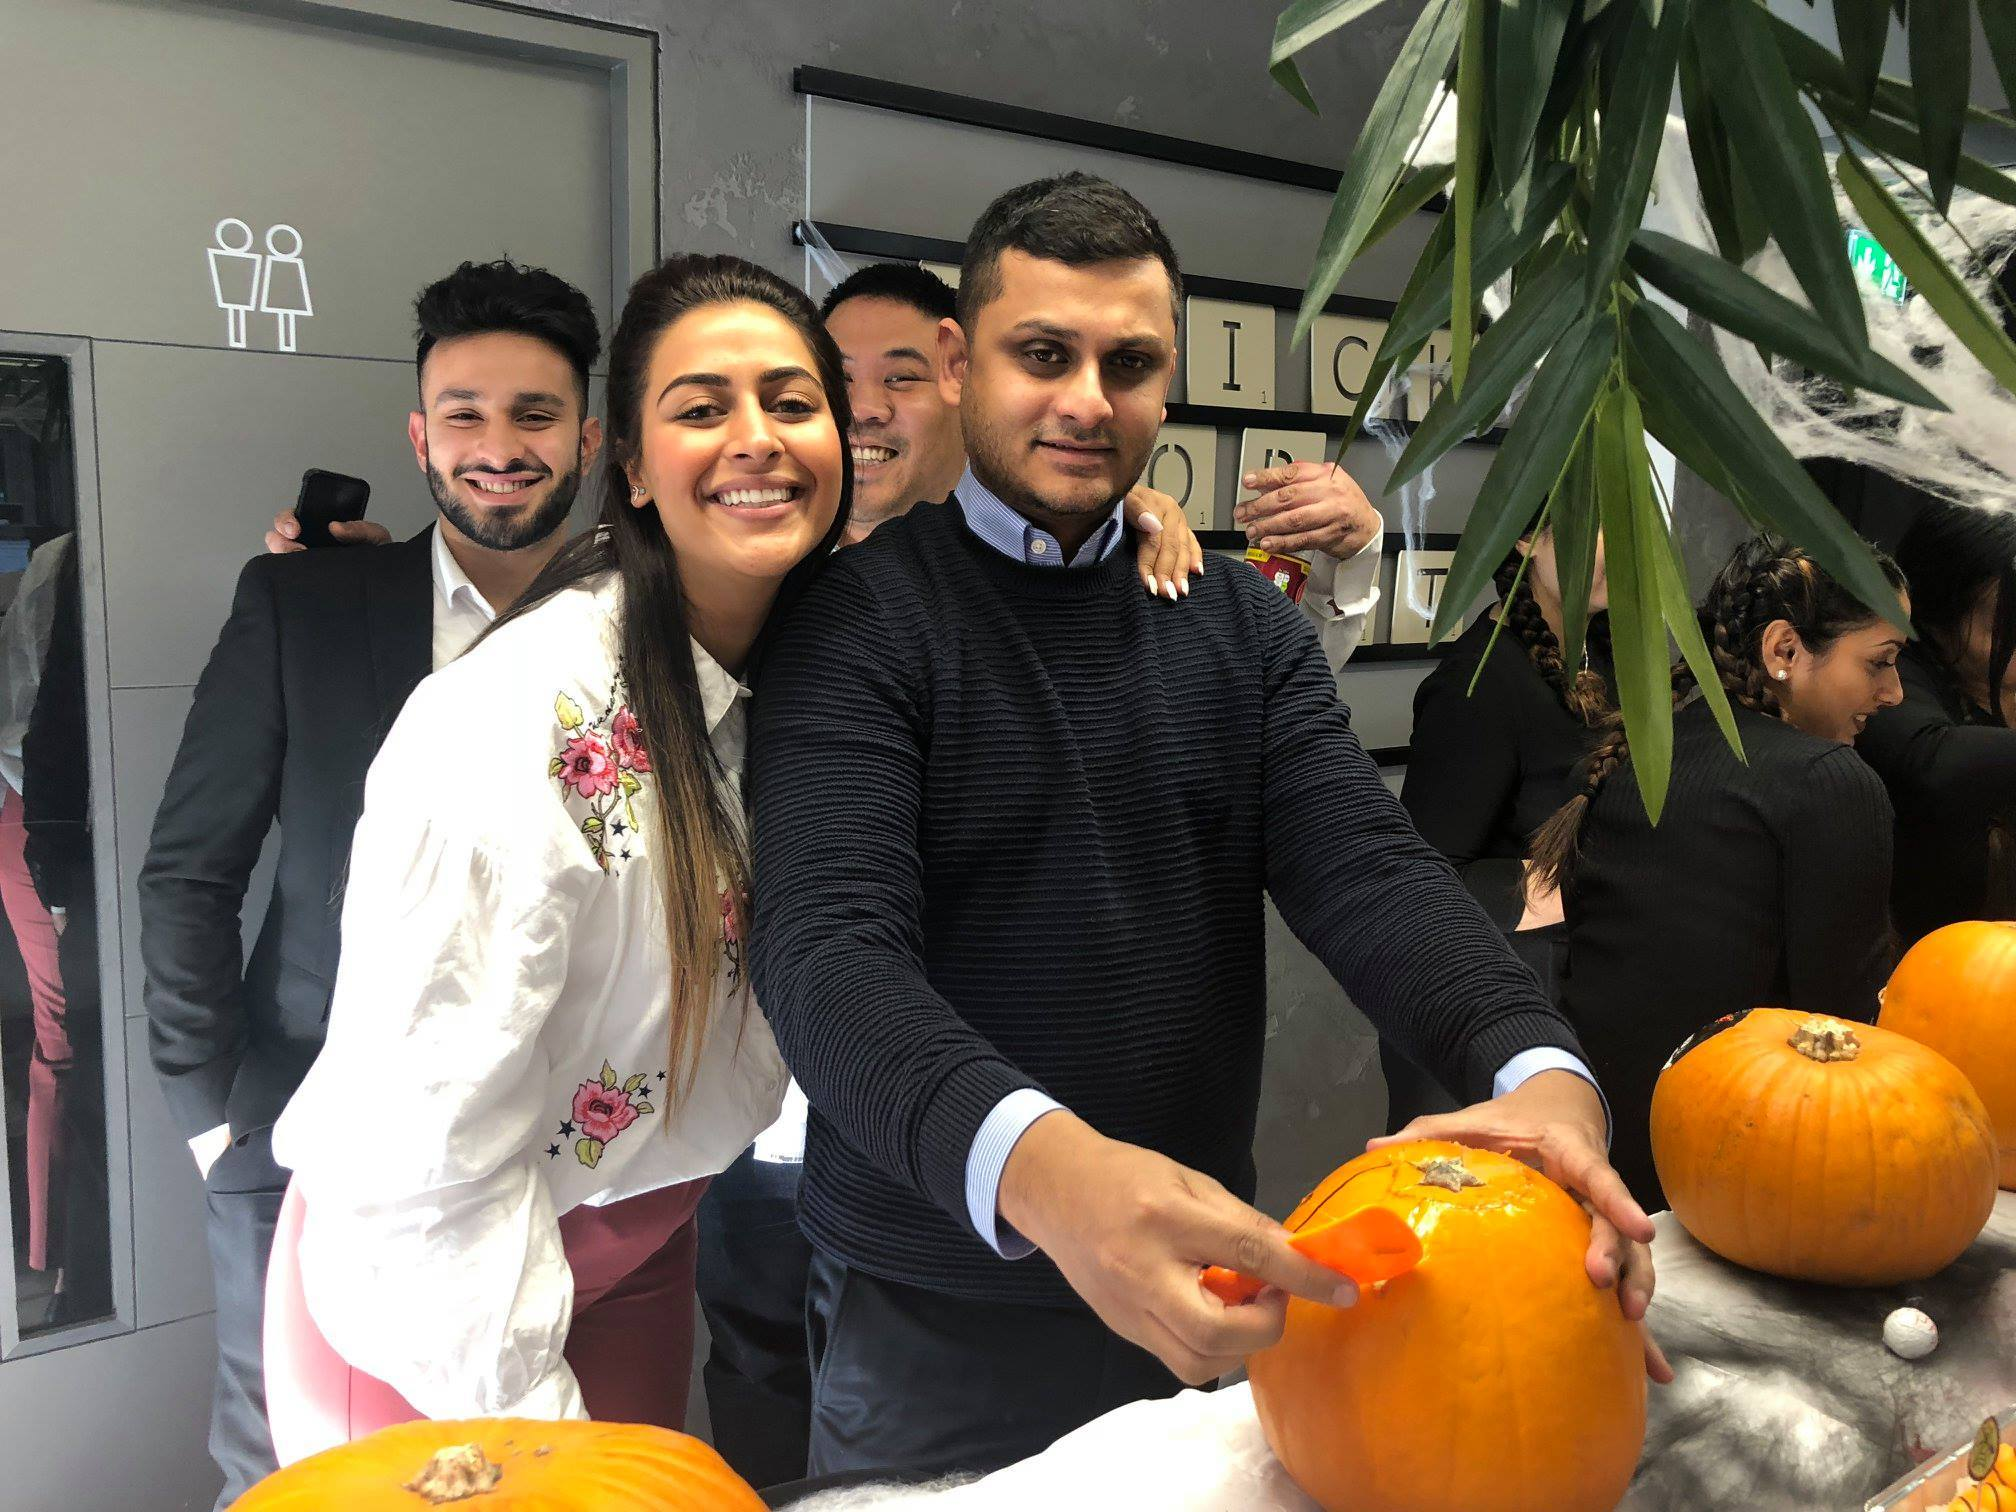 A group of InterQuest Group employees taking part in pumpkin carving competition at the London office